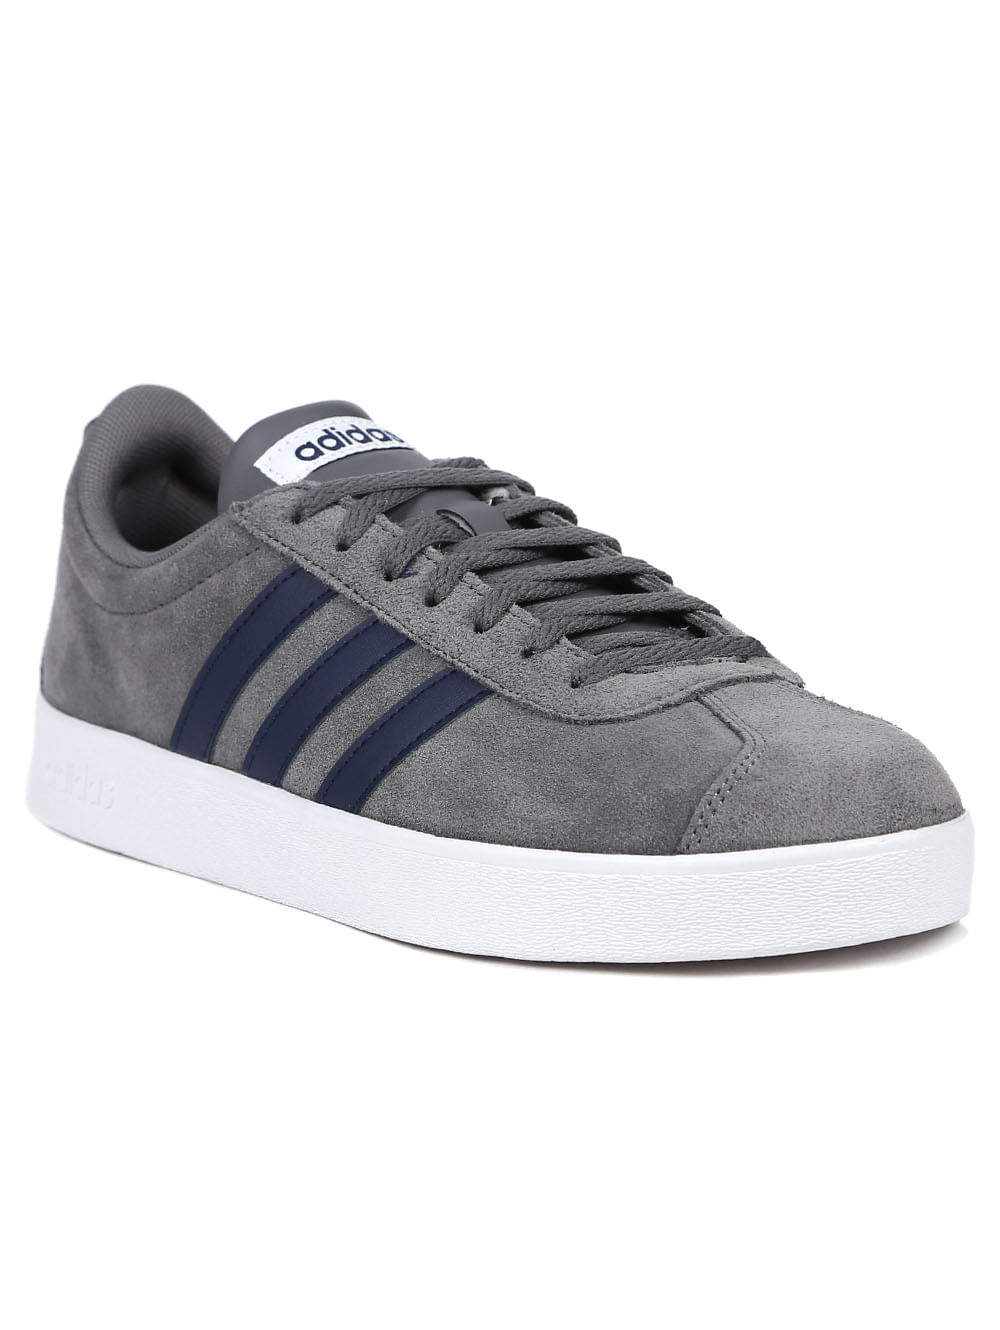 74d37dace Tênis Casual Masculino Adidas VL Court 2 Cinza - Lojas Pompeia